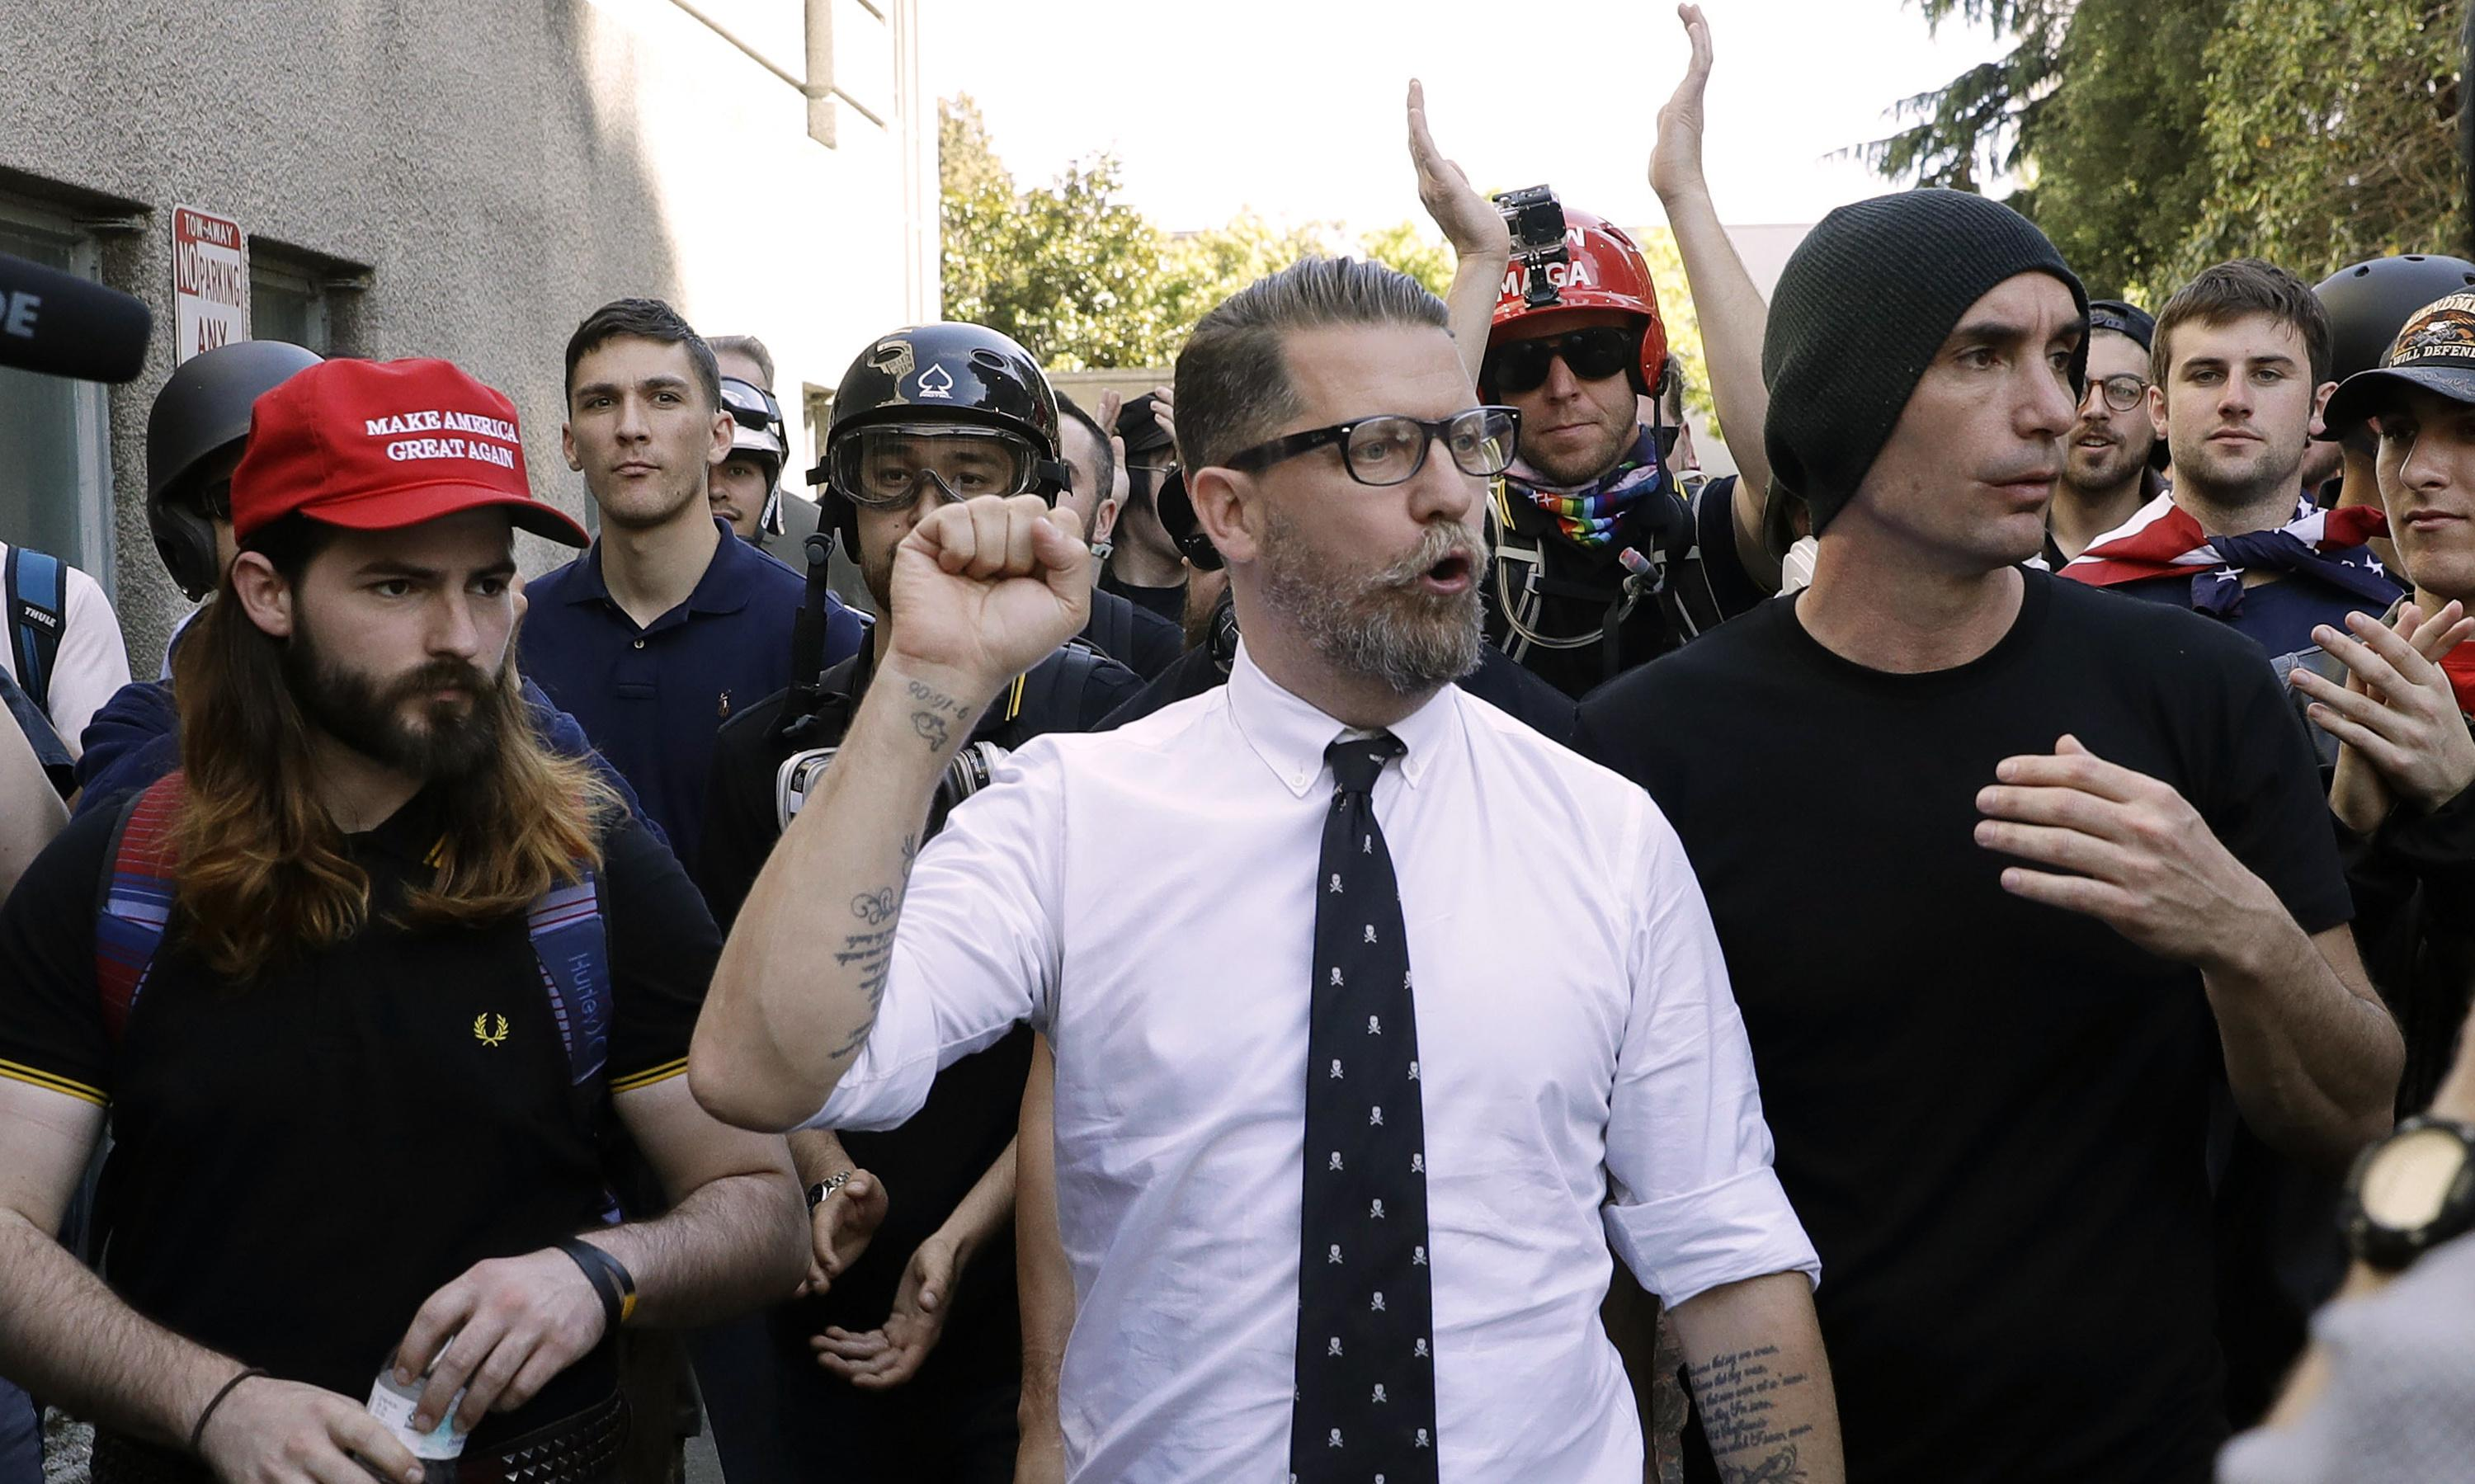 US hate groups have seen ideas enter mainstream in Trump era, report finds